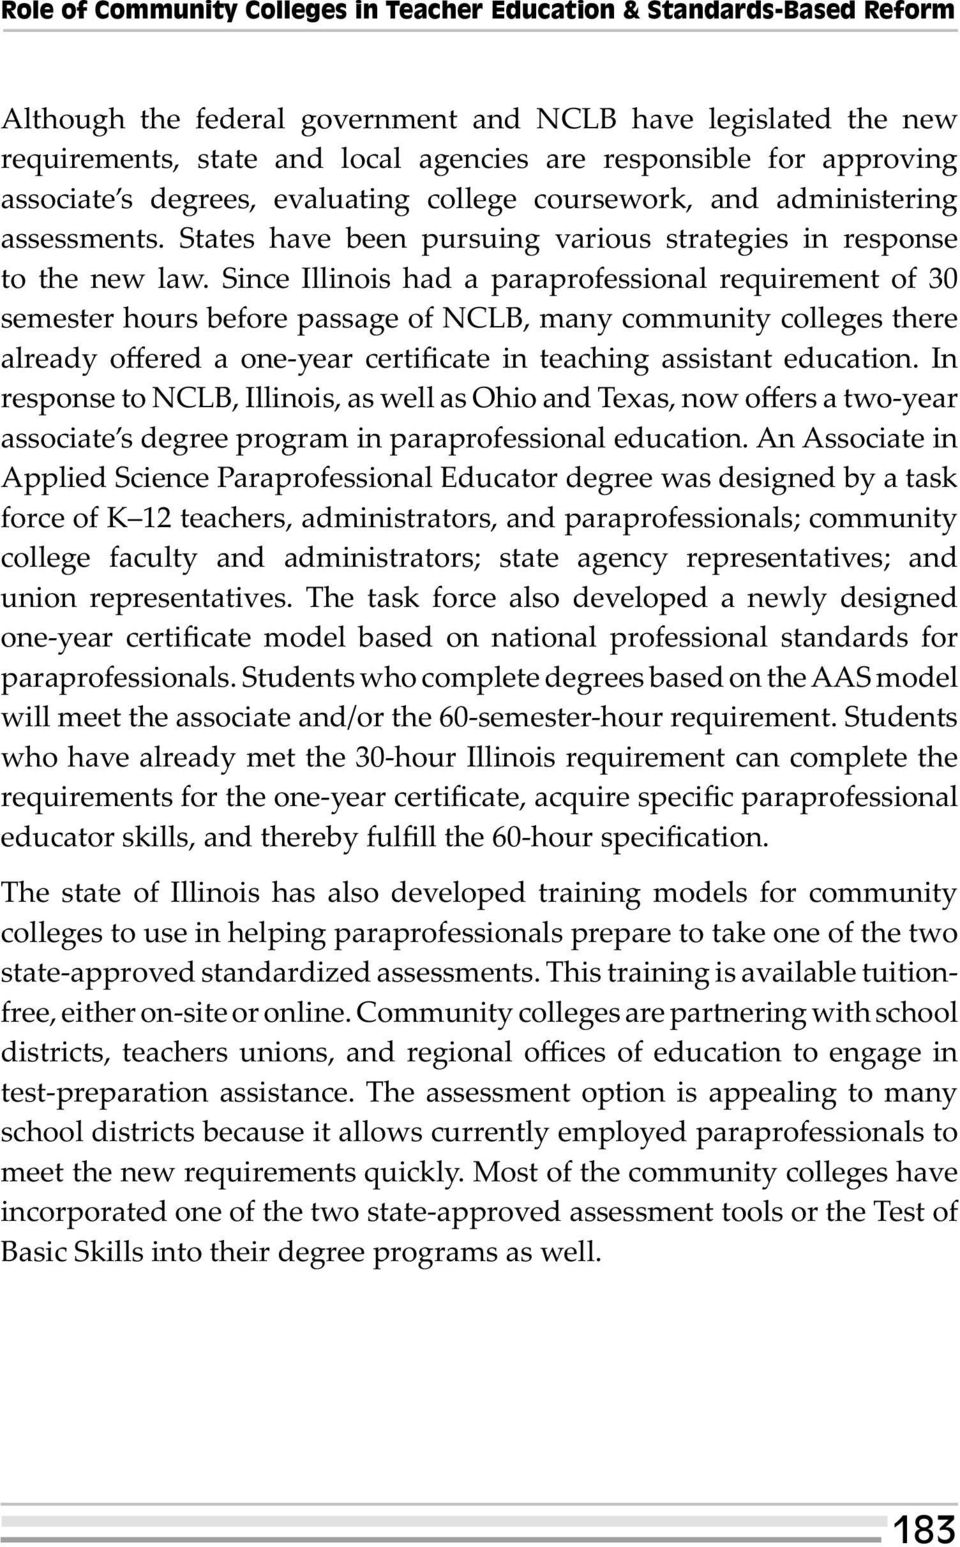 Since Illinois had a paraprofessional requirement of 30 semester hours before passage of NCLB, many community colleges there already offered a one-year certificate in teaching assistant education.